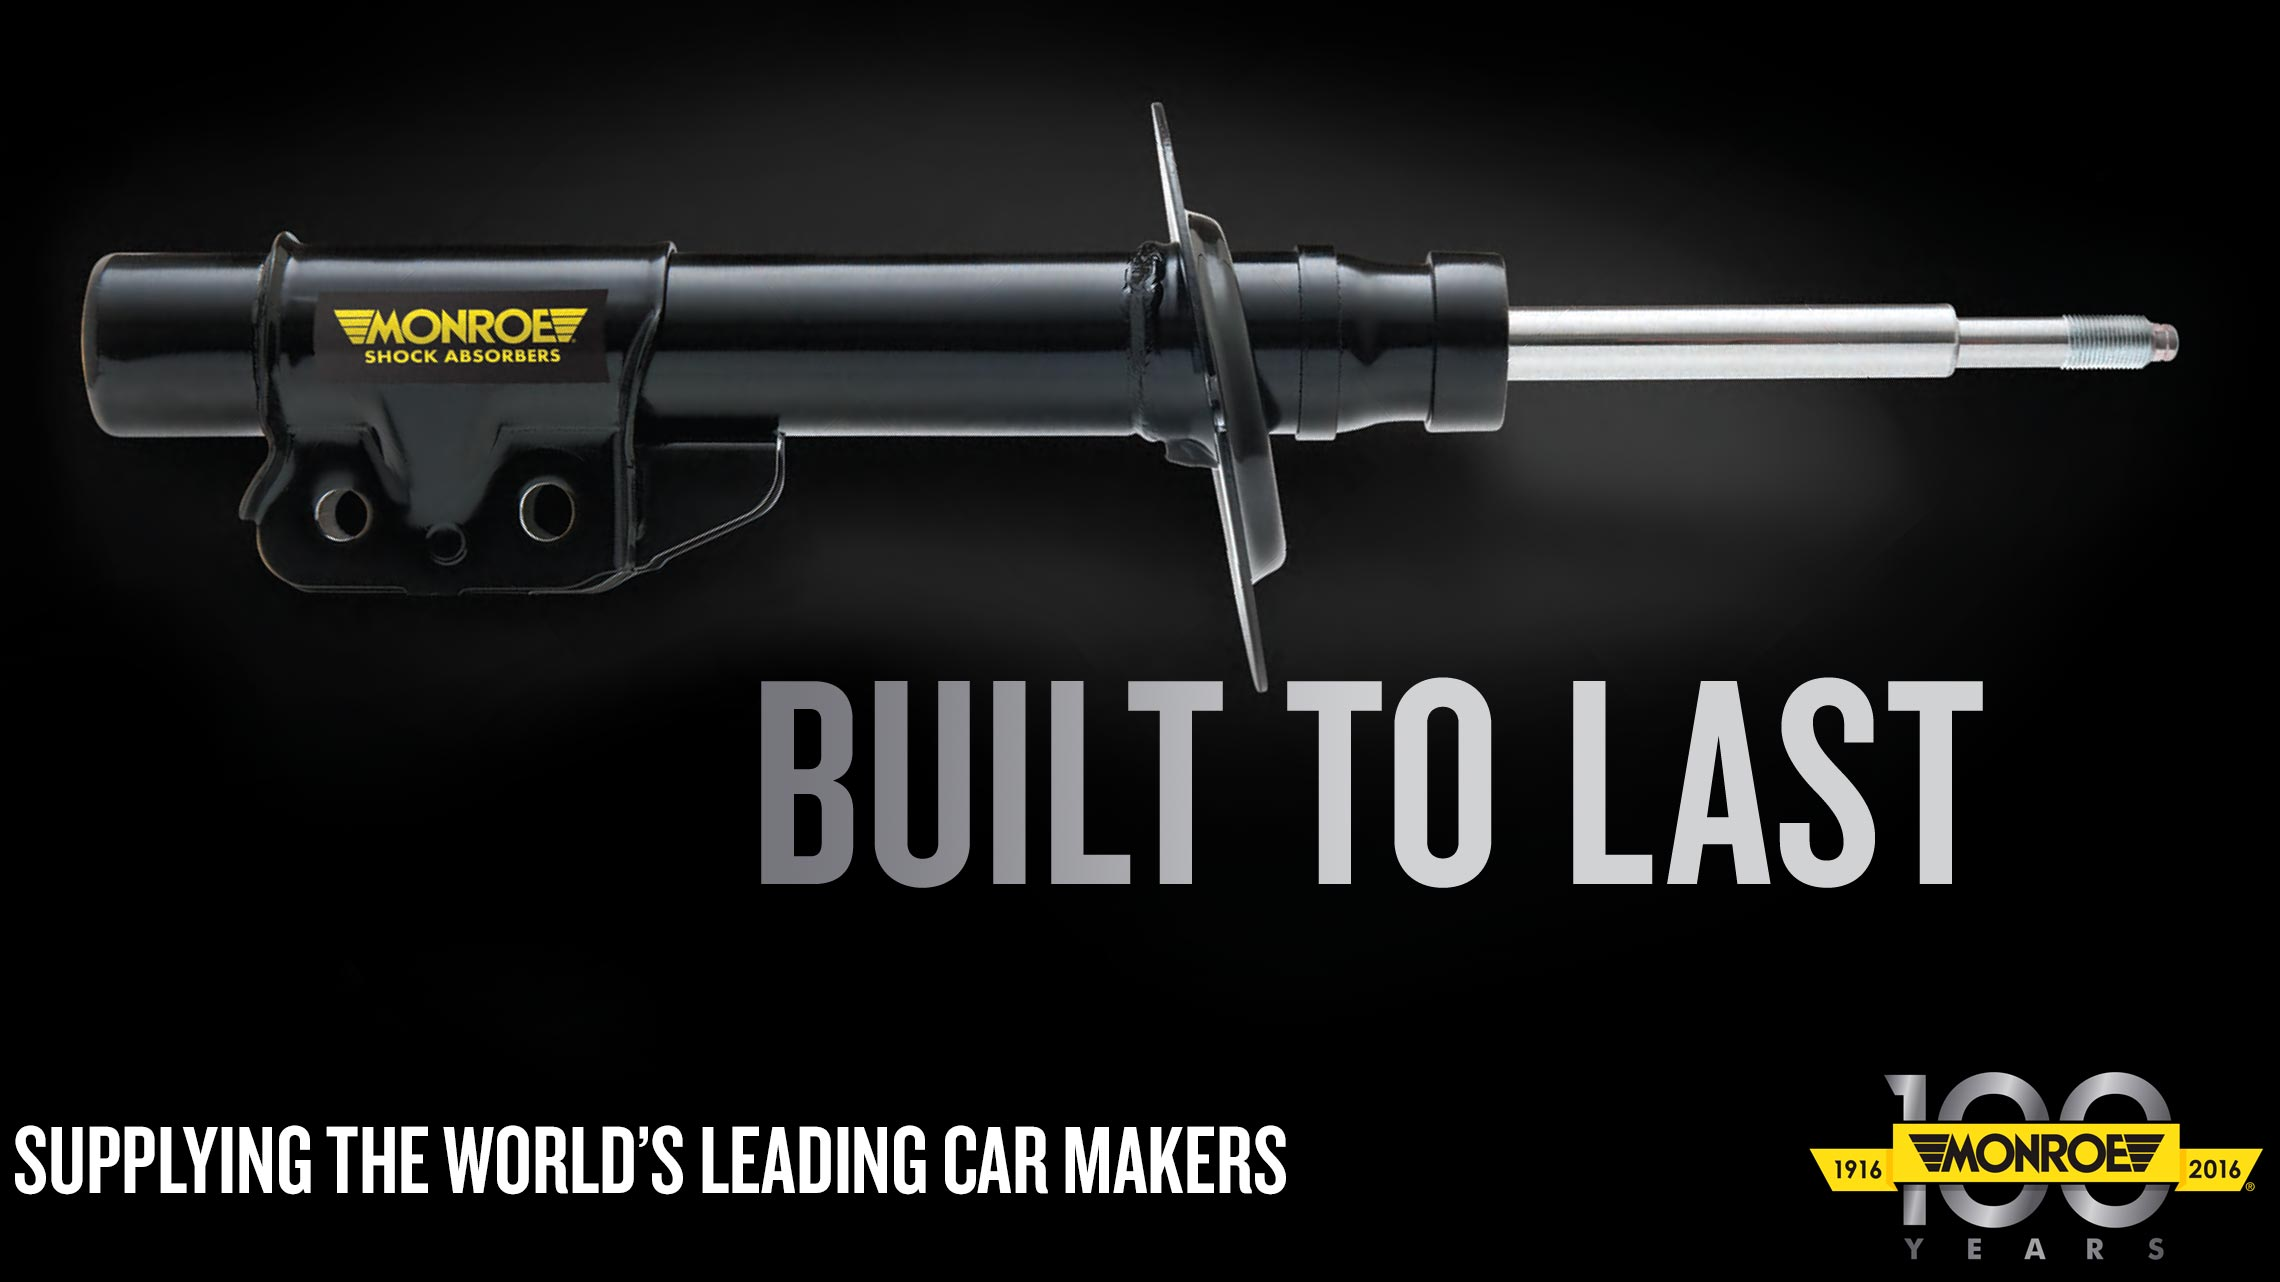 Monroe Shock Absorbers - Built to Last - Supplying the world's leading car makers